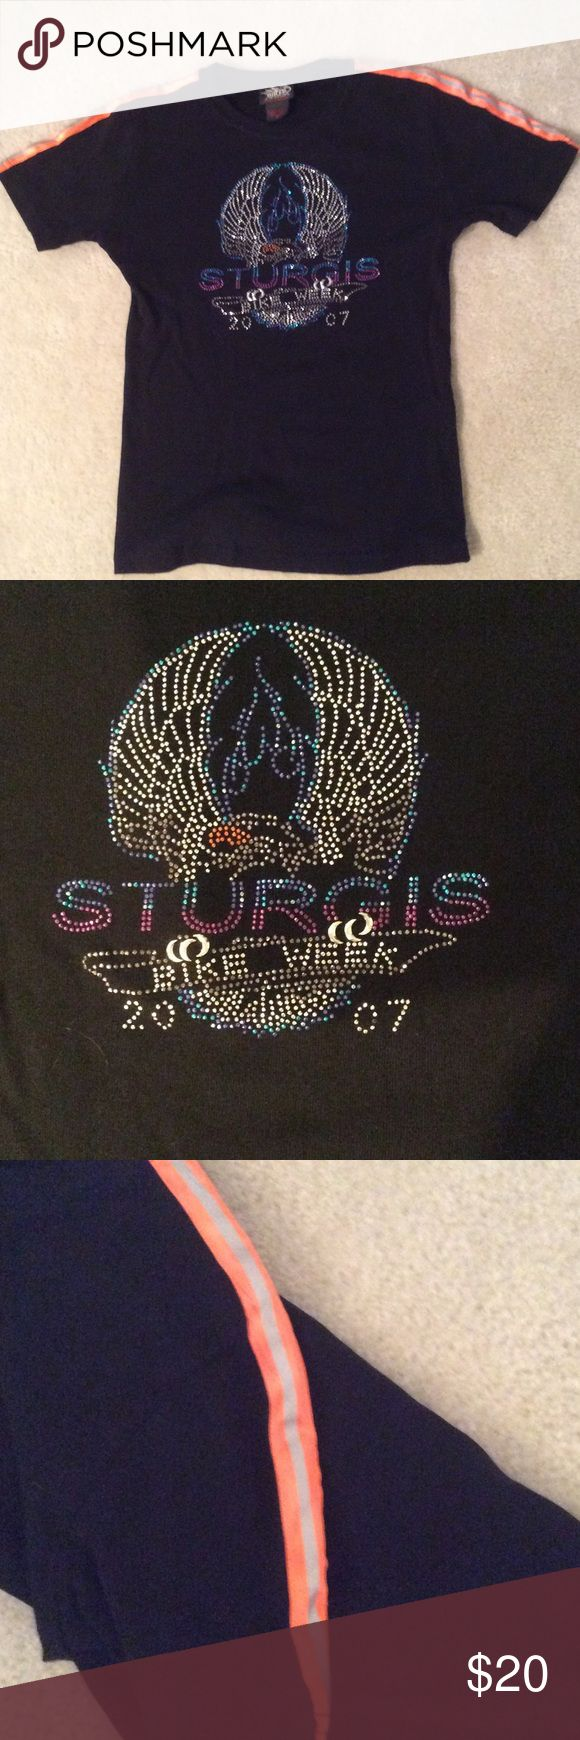 Reflective Sturgis Bike Week Shirt S Black tee from Sturgis Bike Week 2007.  Reflective piping on shoulders and awesome detailing on front.  EUC! biker design Tops Muscle Tees